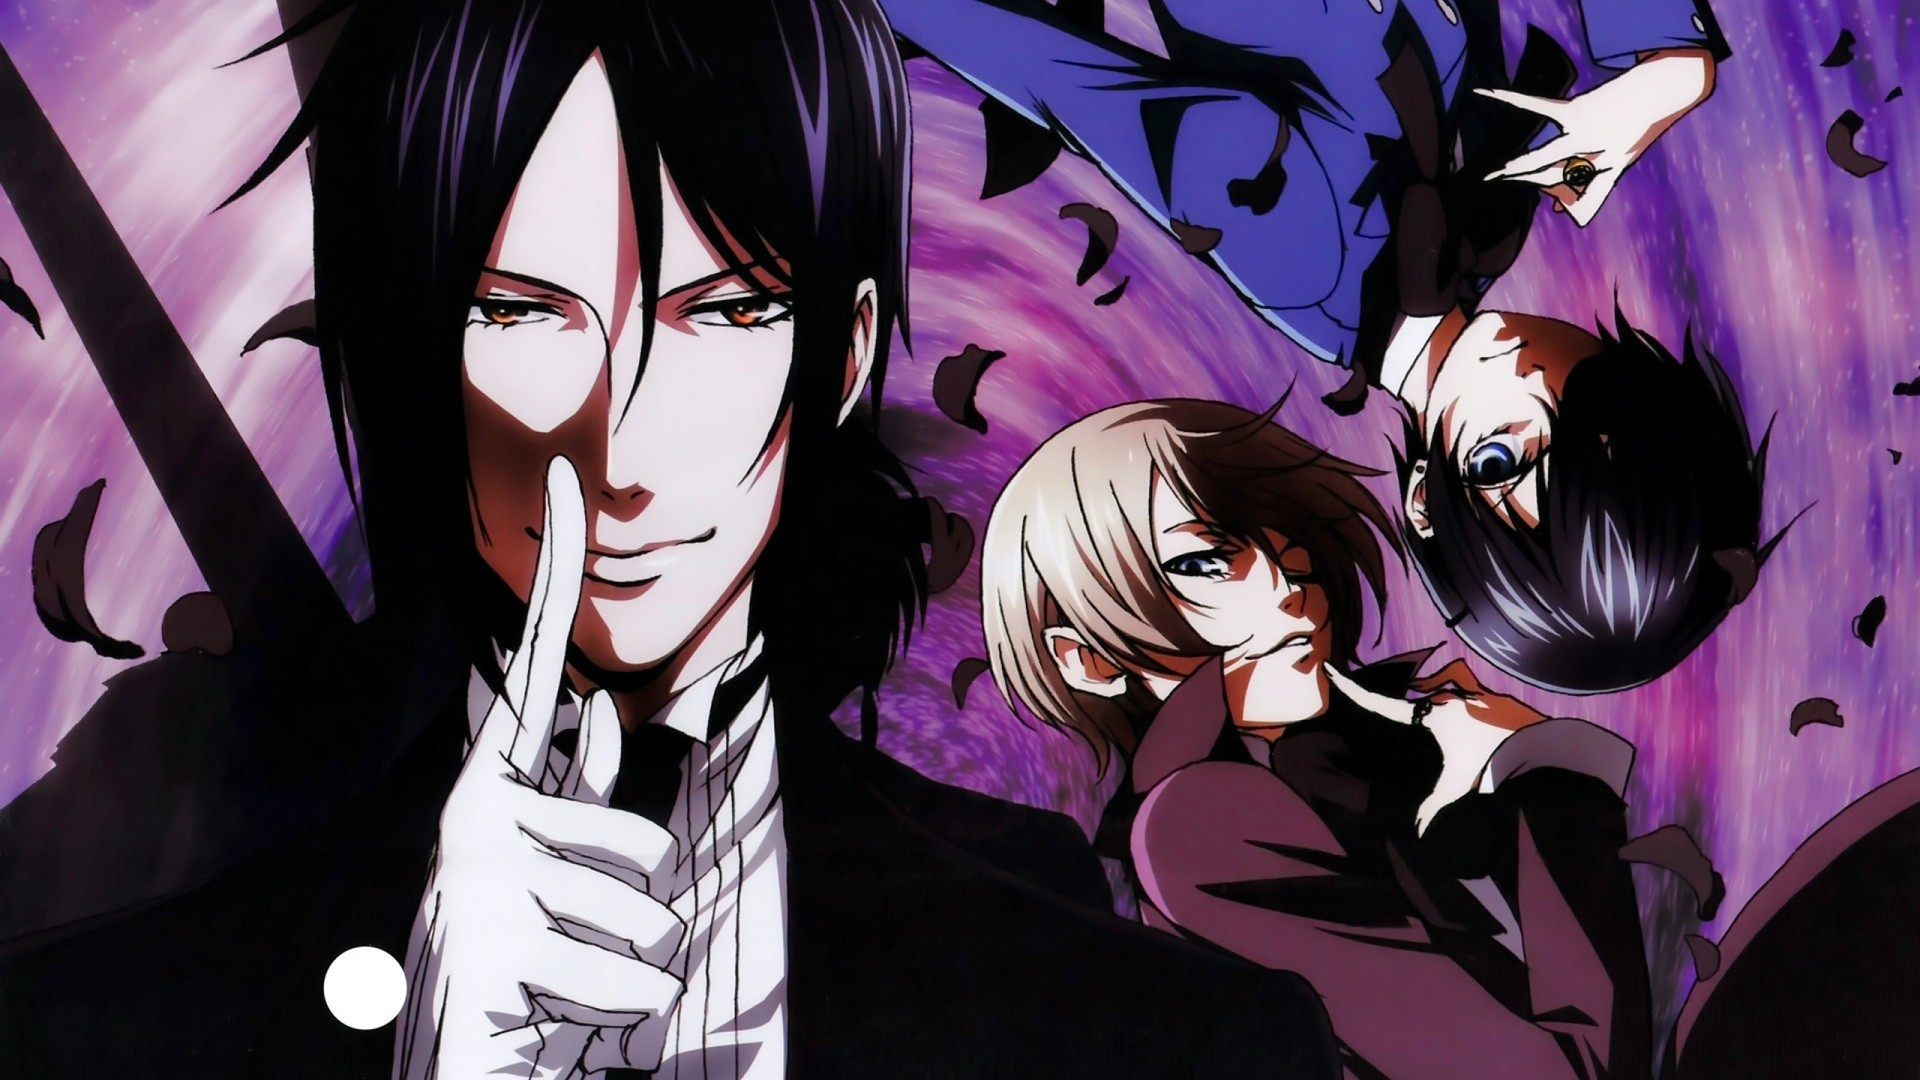 Res: 1920x1080, Black butler wallpaper 5